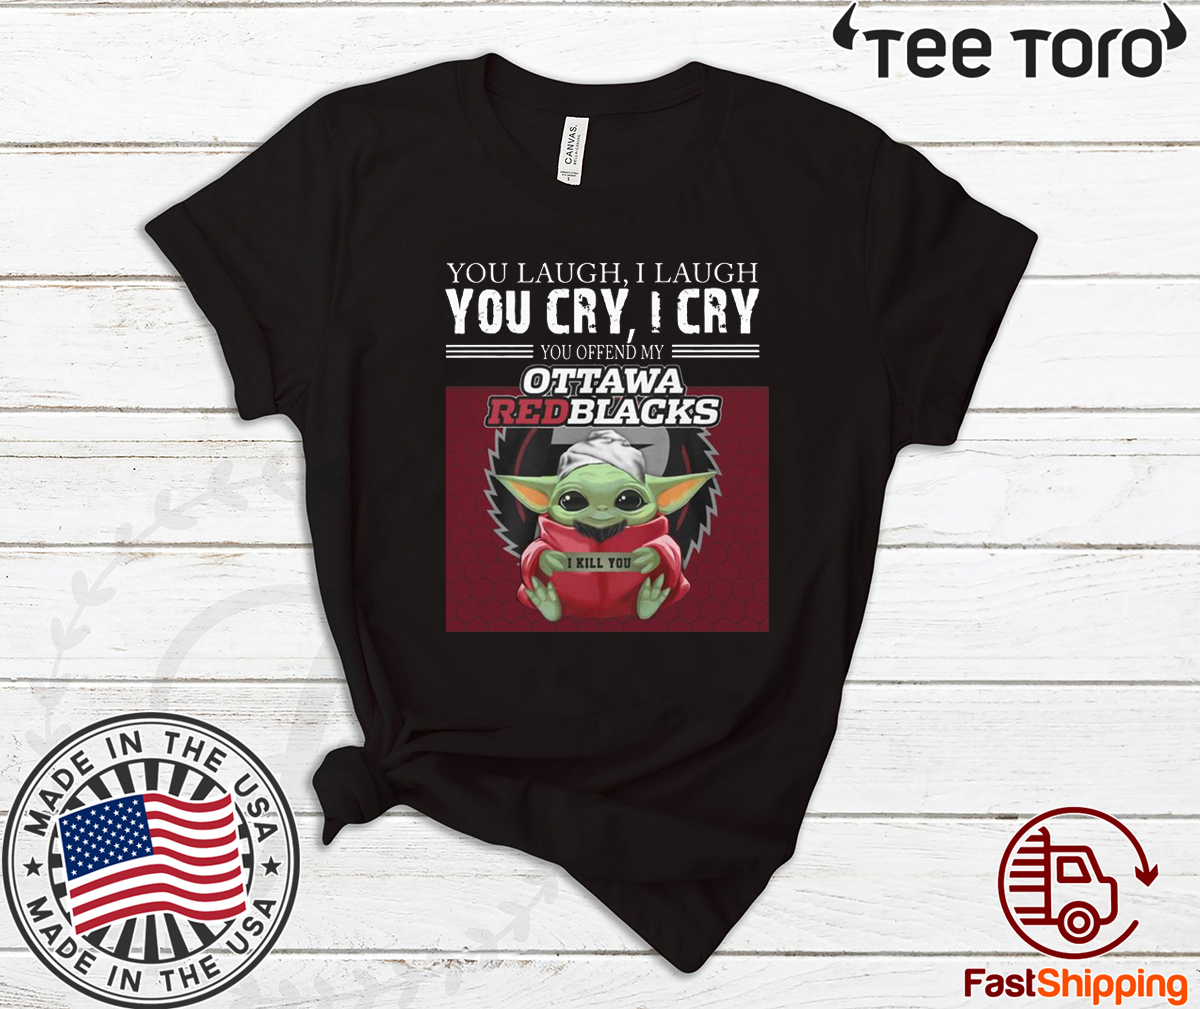 Baby Yoda you laugh I laugh you cry I cry you offend my Ottawa Redblacks I kill you 2020 T-Shirt